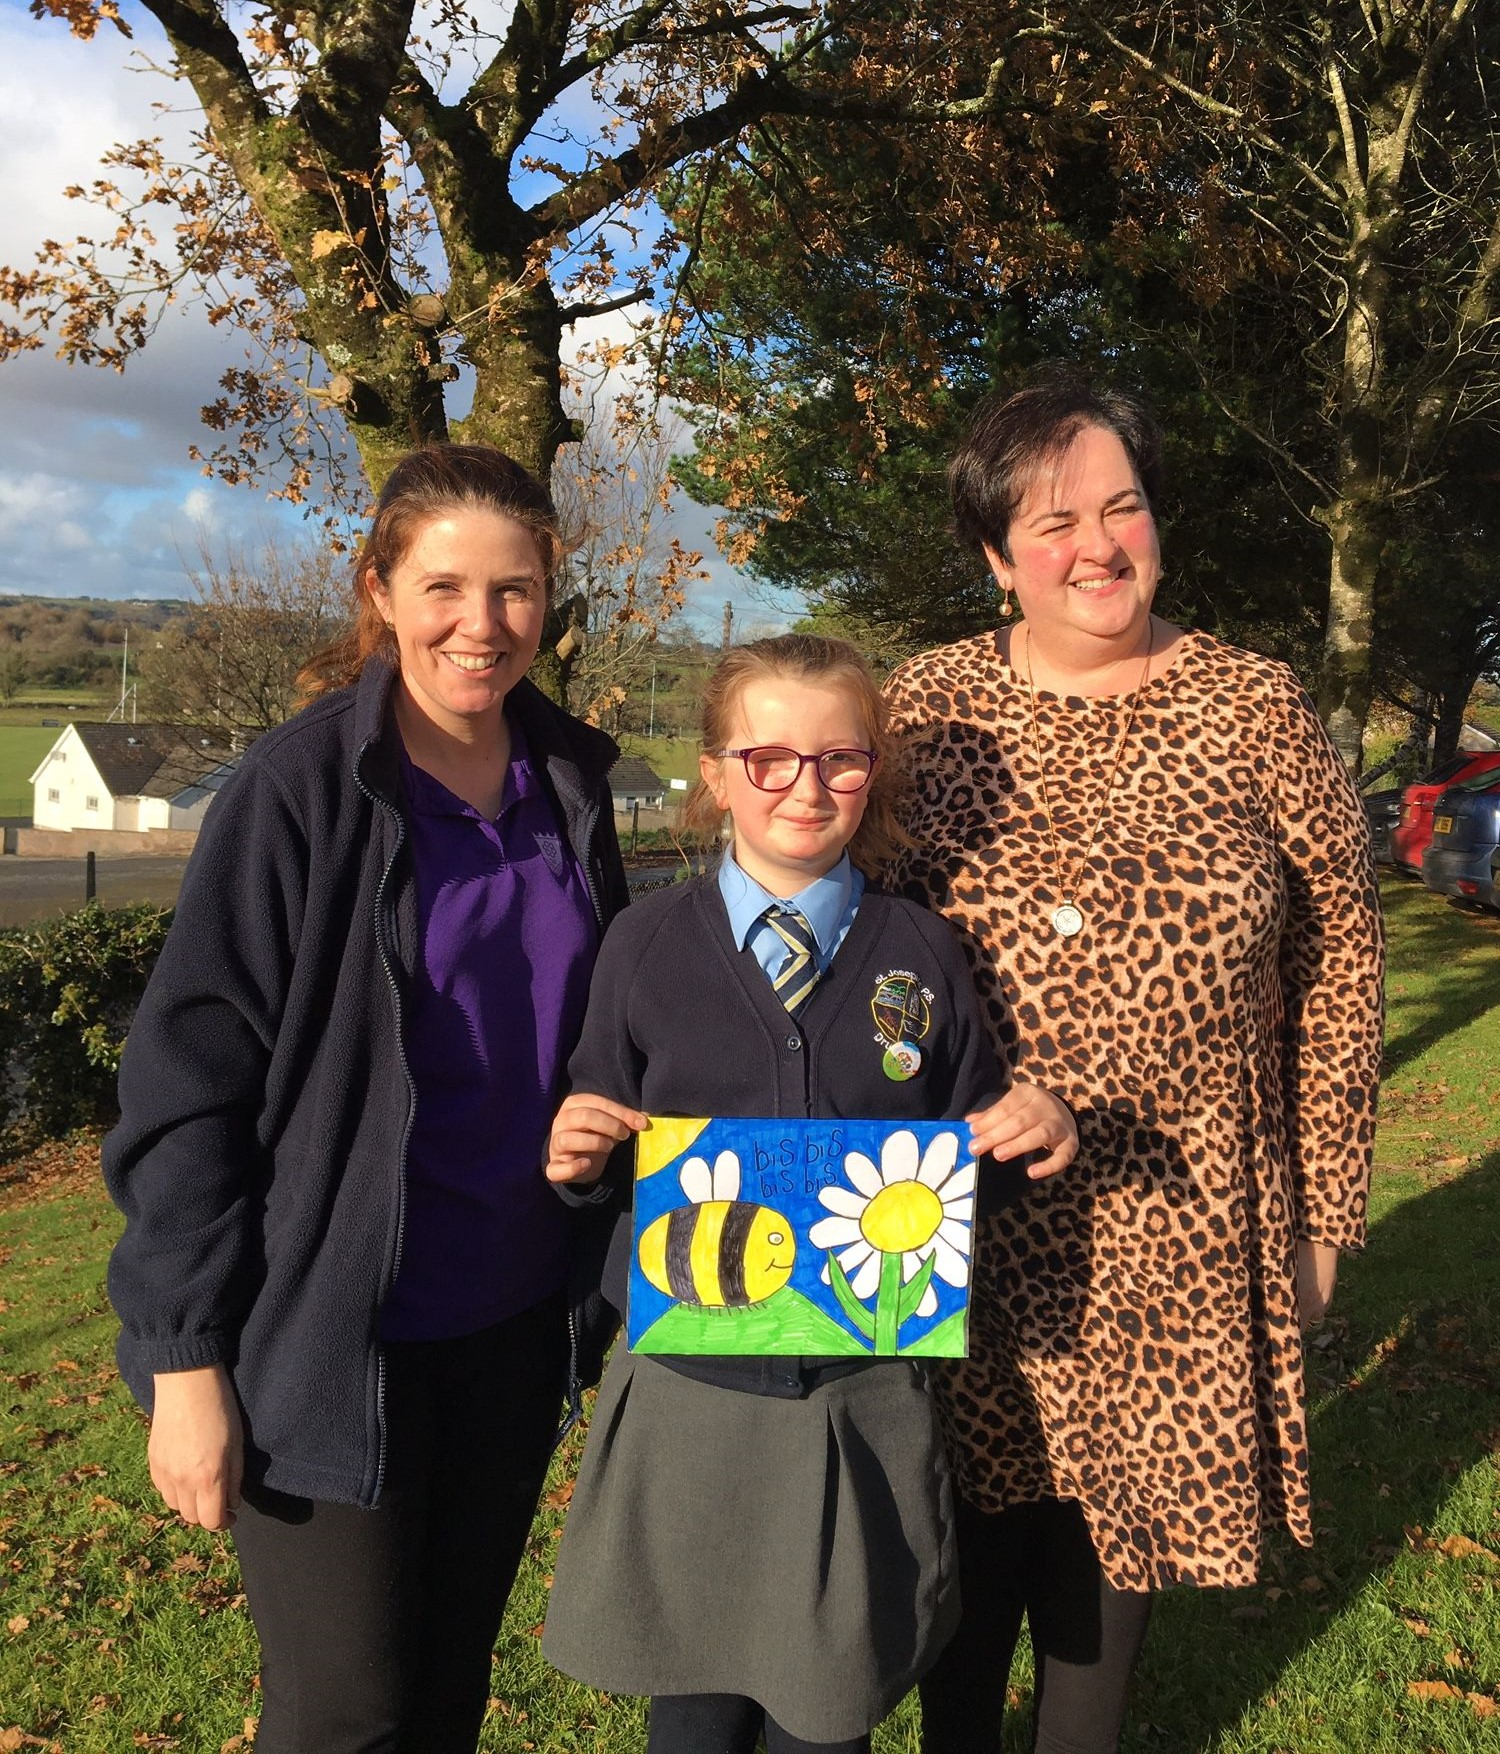 Pictured with her teacher, Geraldine Campbell and Julie Corry, Biodiversity Officer, Fermanagh and Omagh District Council, is Lucy Connolly from St. Joseph's PS, Drumquin who was one of 10 winners from across the District in the Trees for Bees art competition.